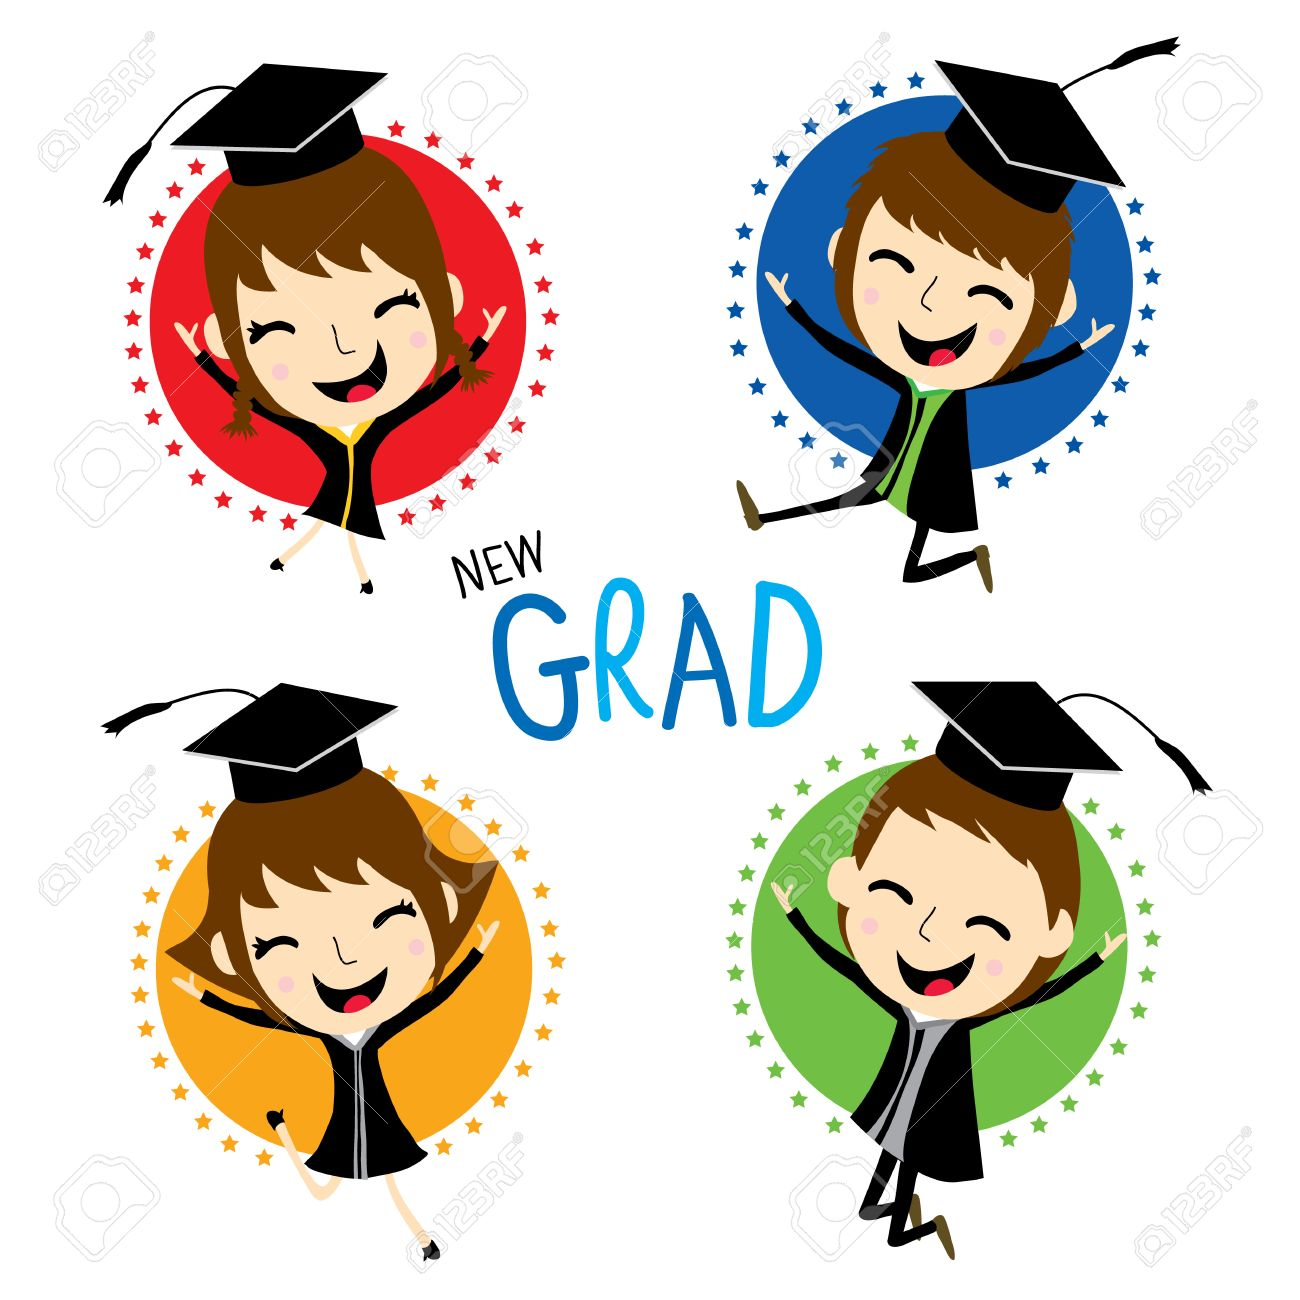 1300x1300 Congratulation New Graduate Cute Cartoon Vector Royalty Free